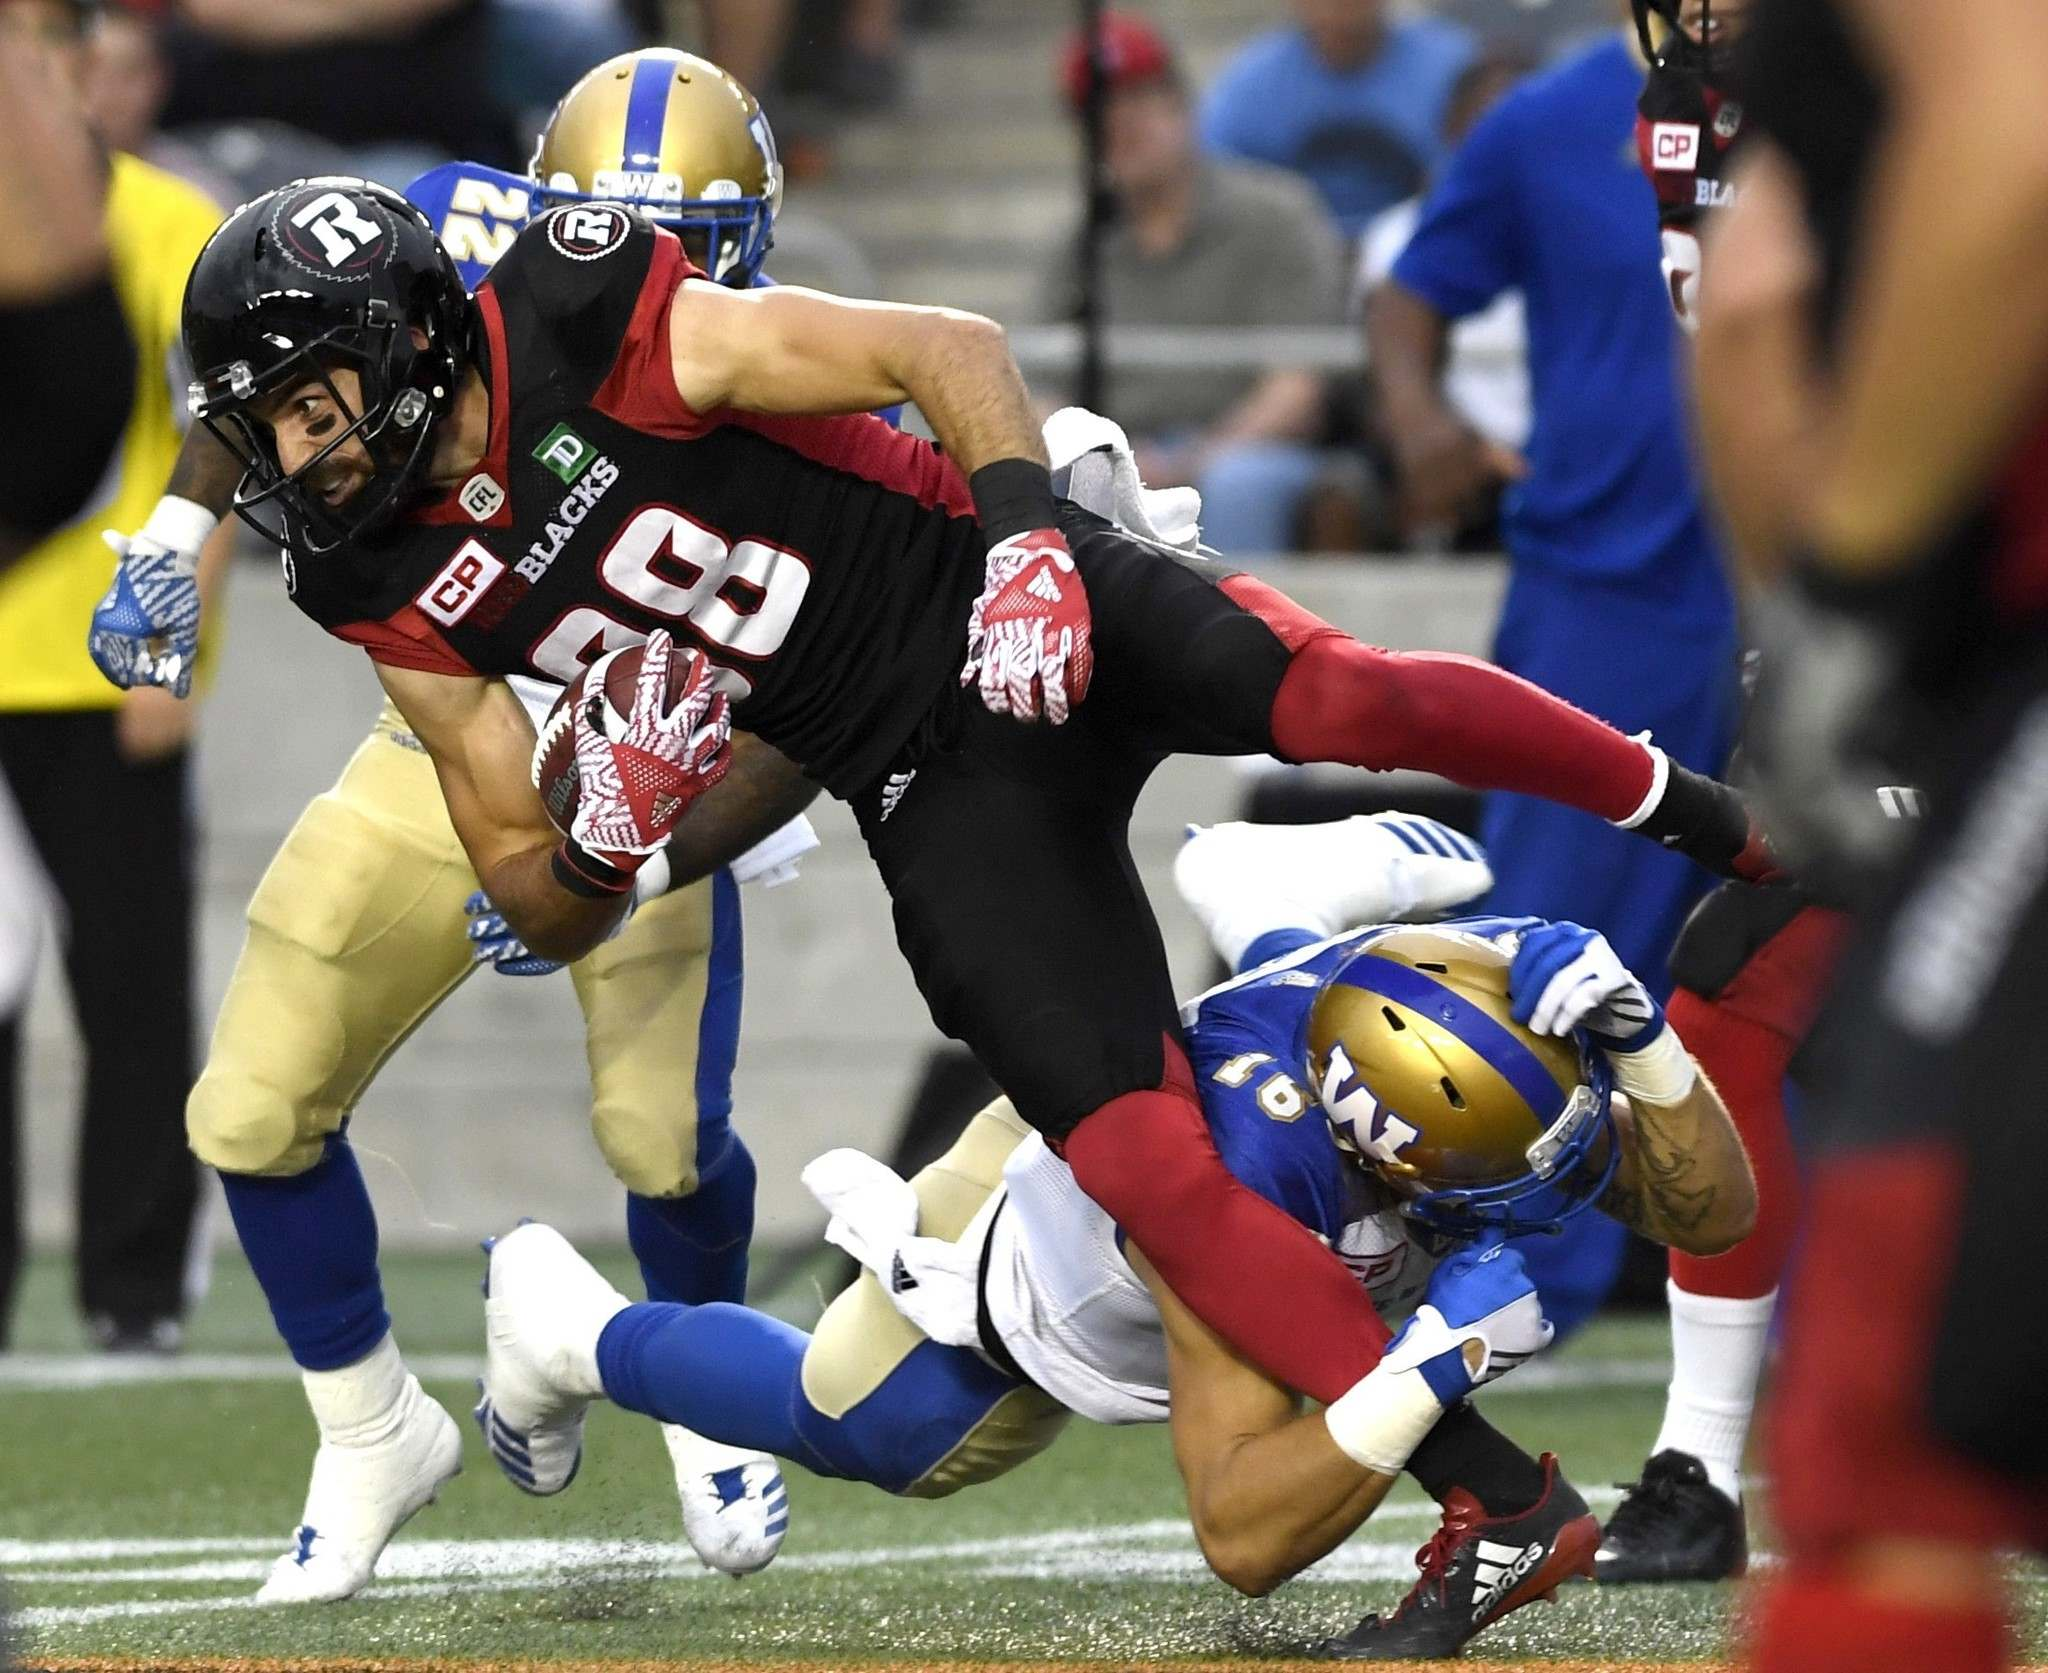 Bombers safety Taylor Loffler brings down Ottawa Redblacks receiver Brad Sinopoli on Friday.